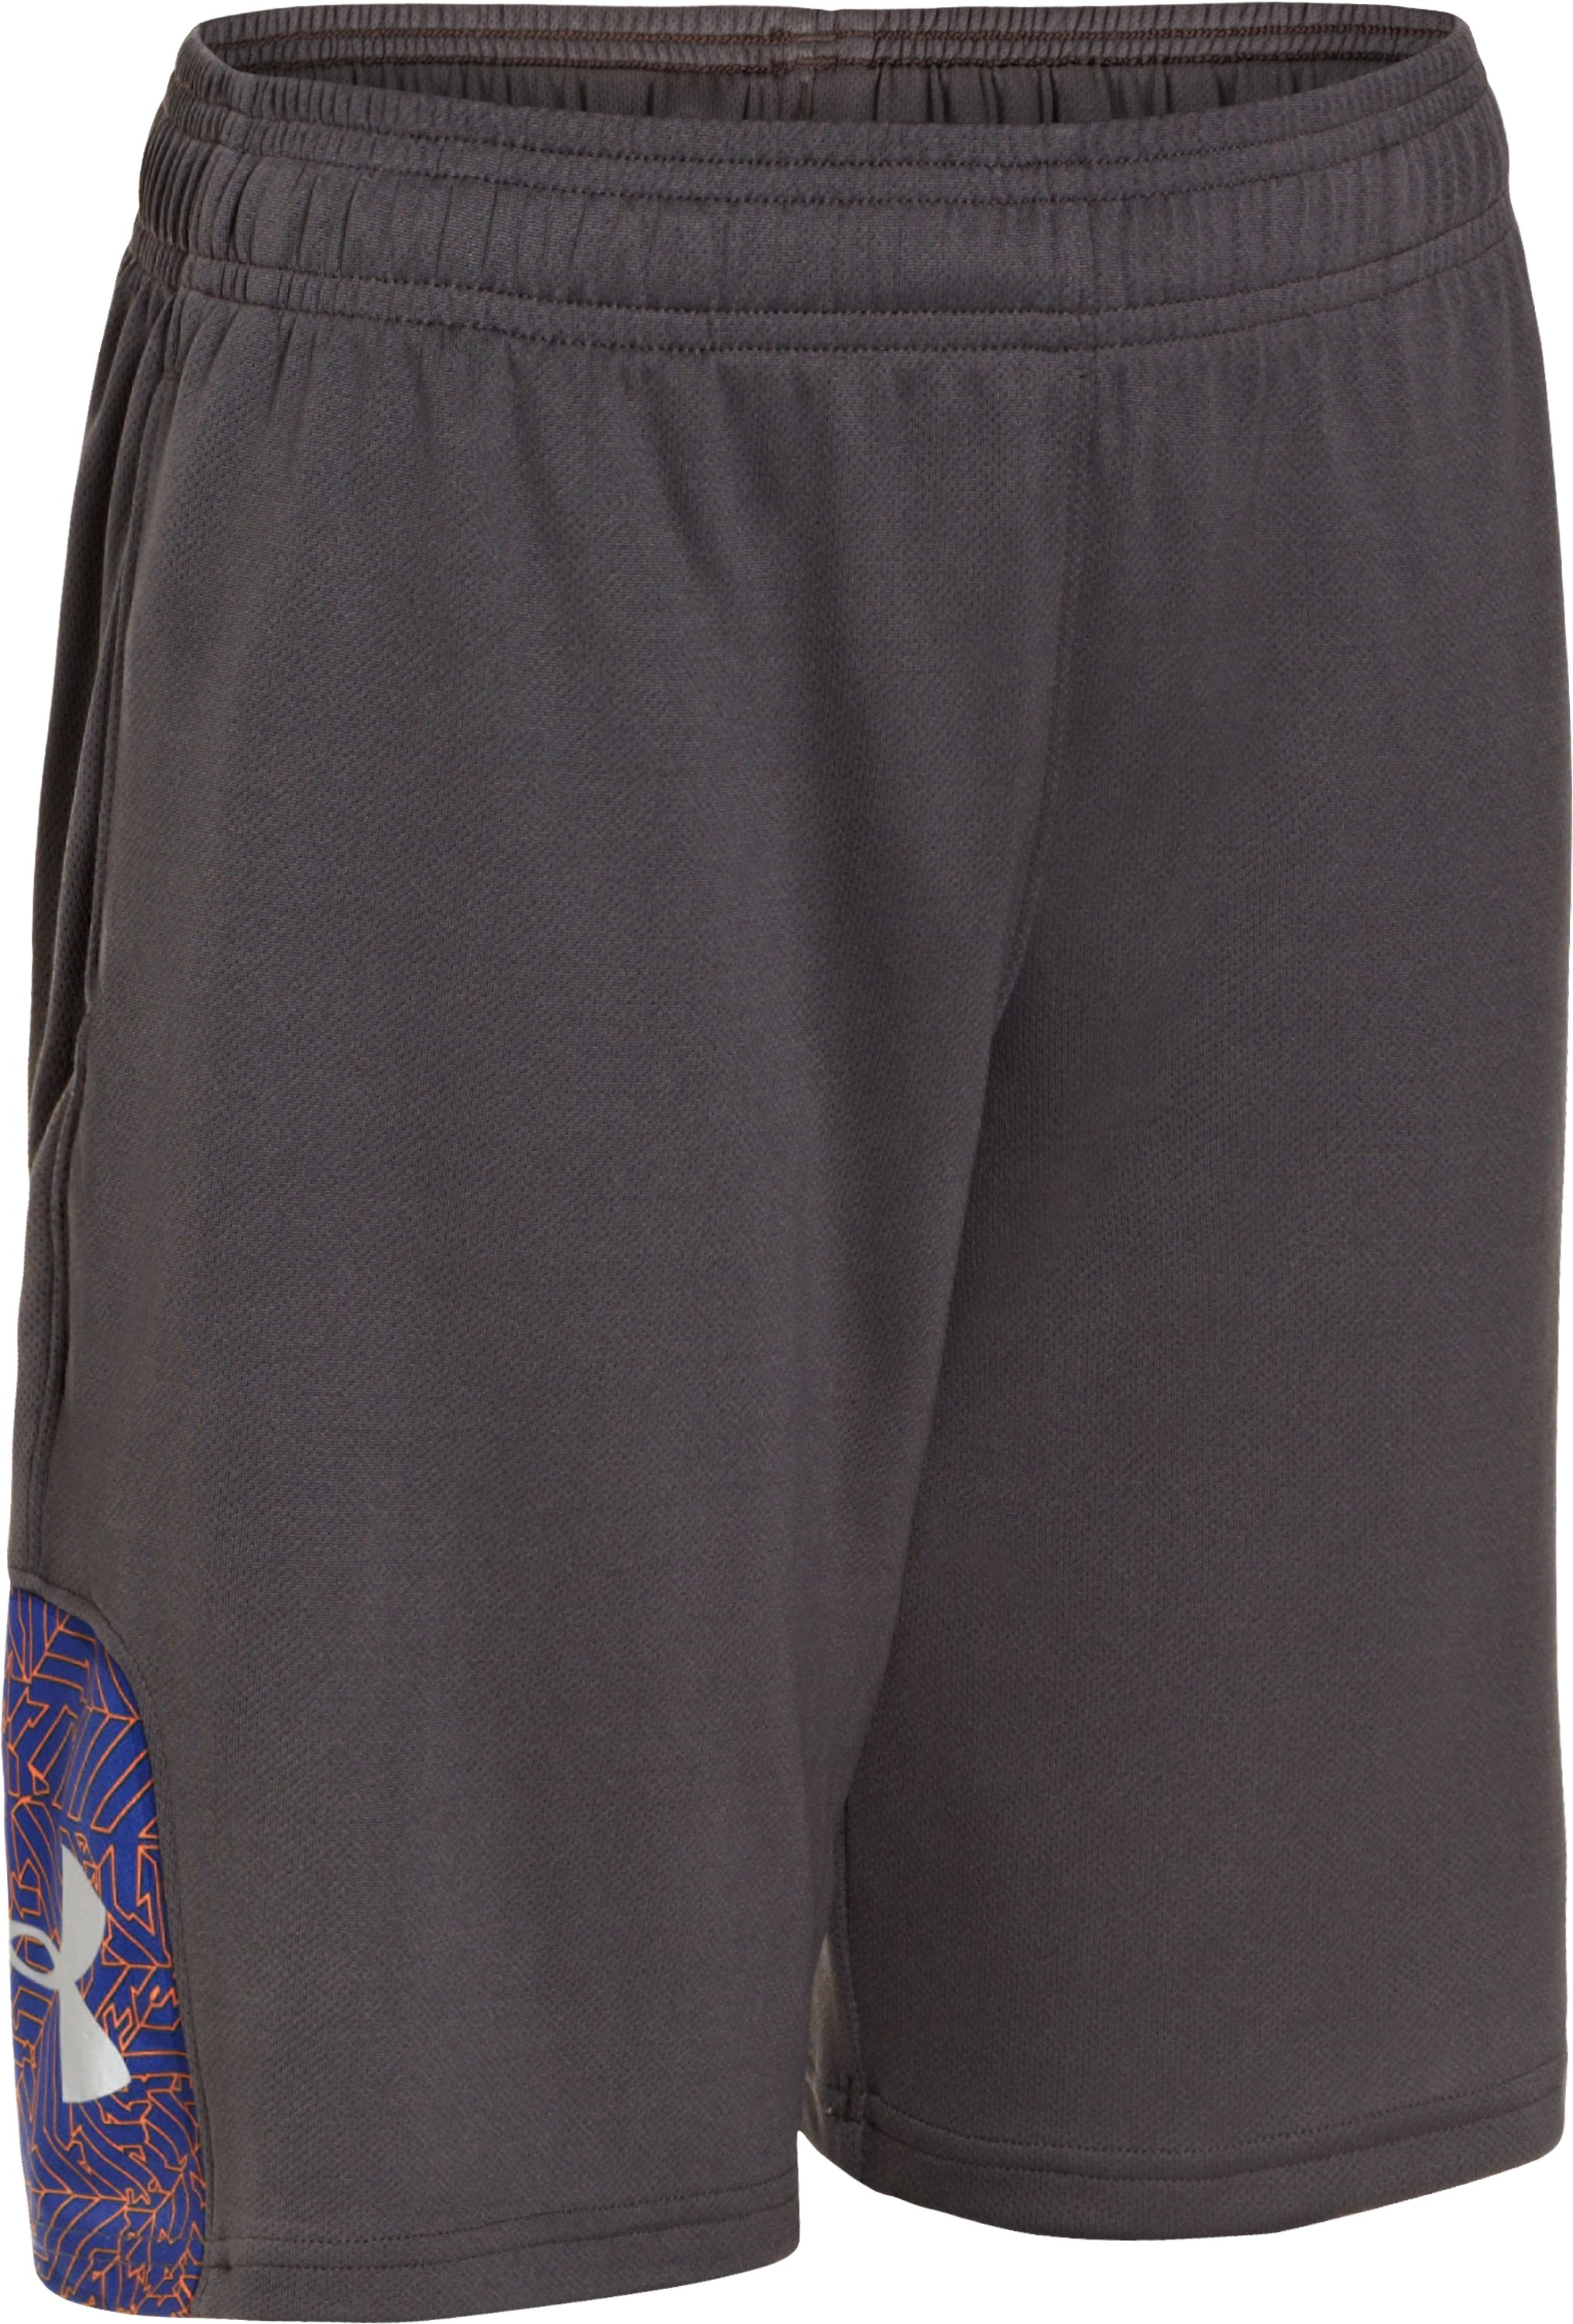 Boys' UA Watch Out Shorts, Charcoal